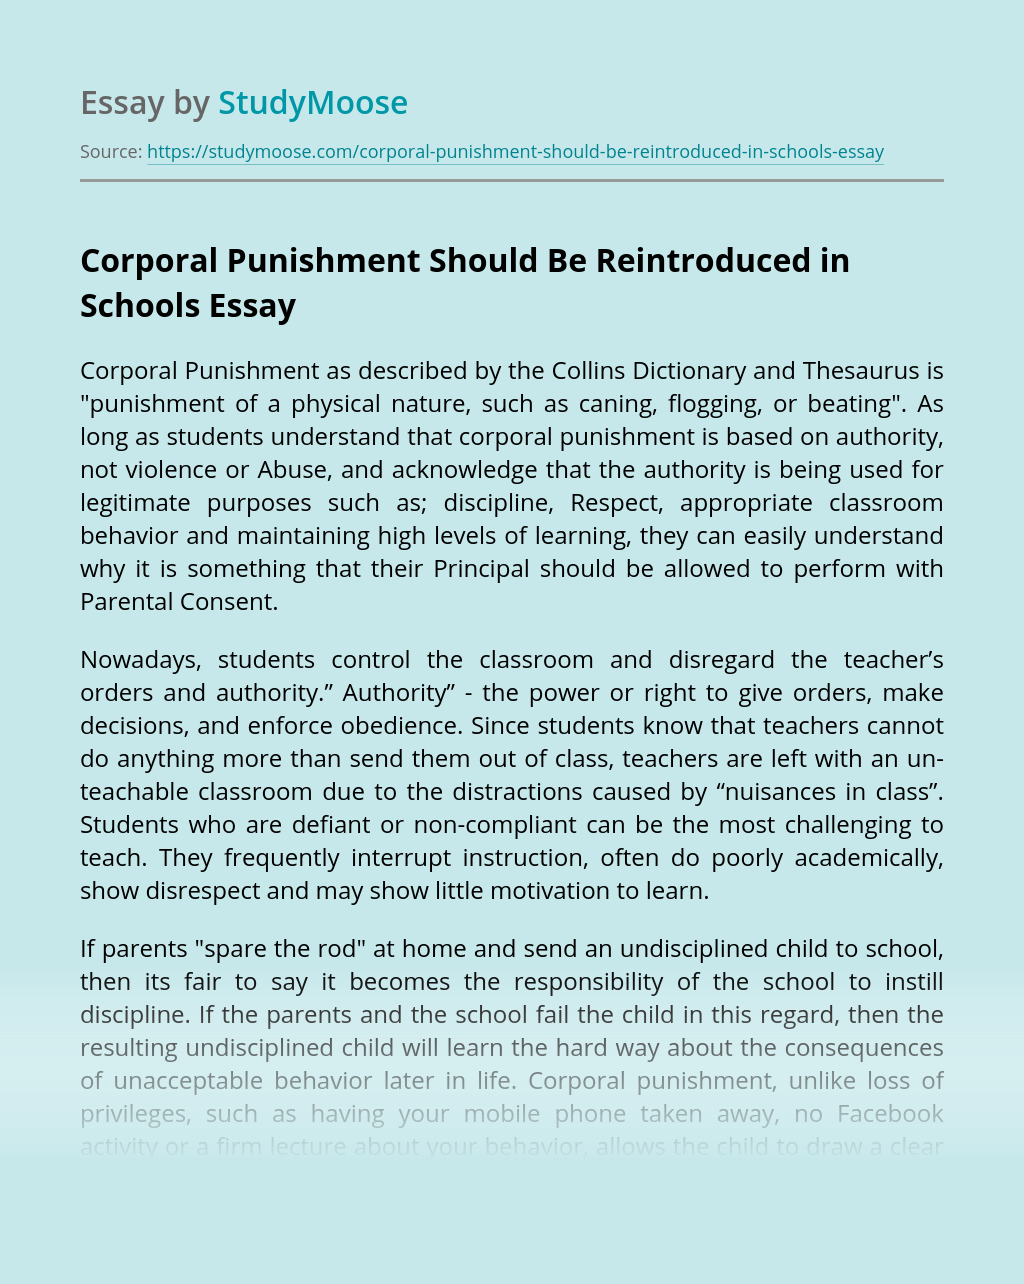 Corporal Punishment Should Be Reintroduced in Schools